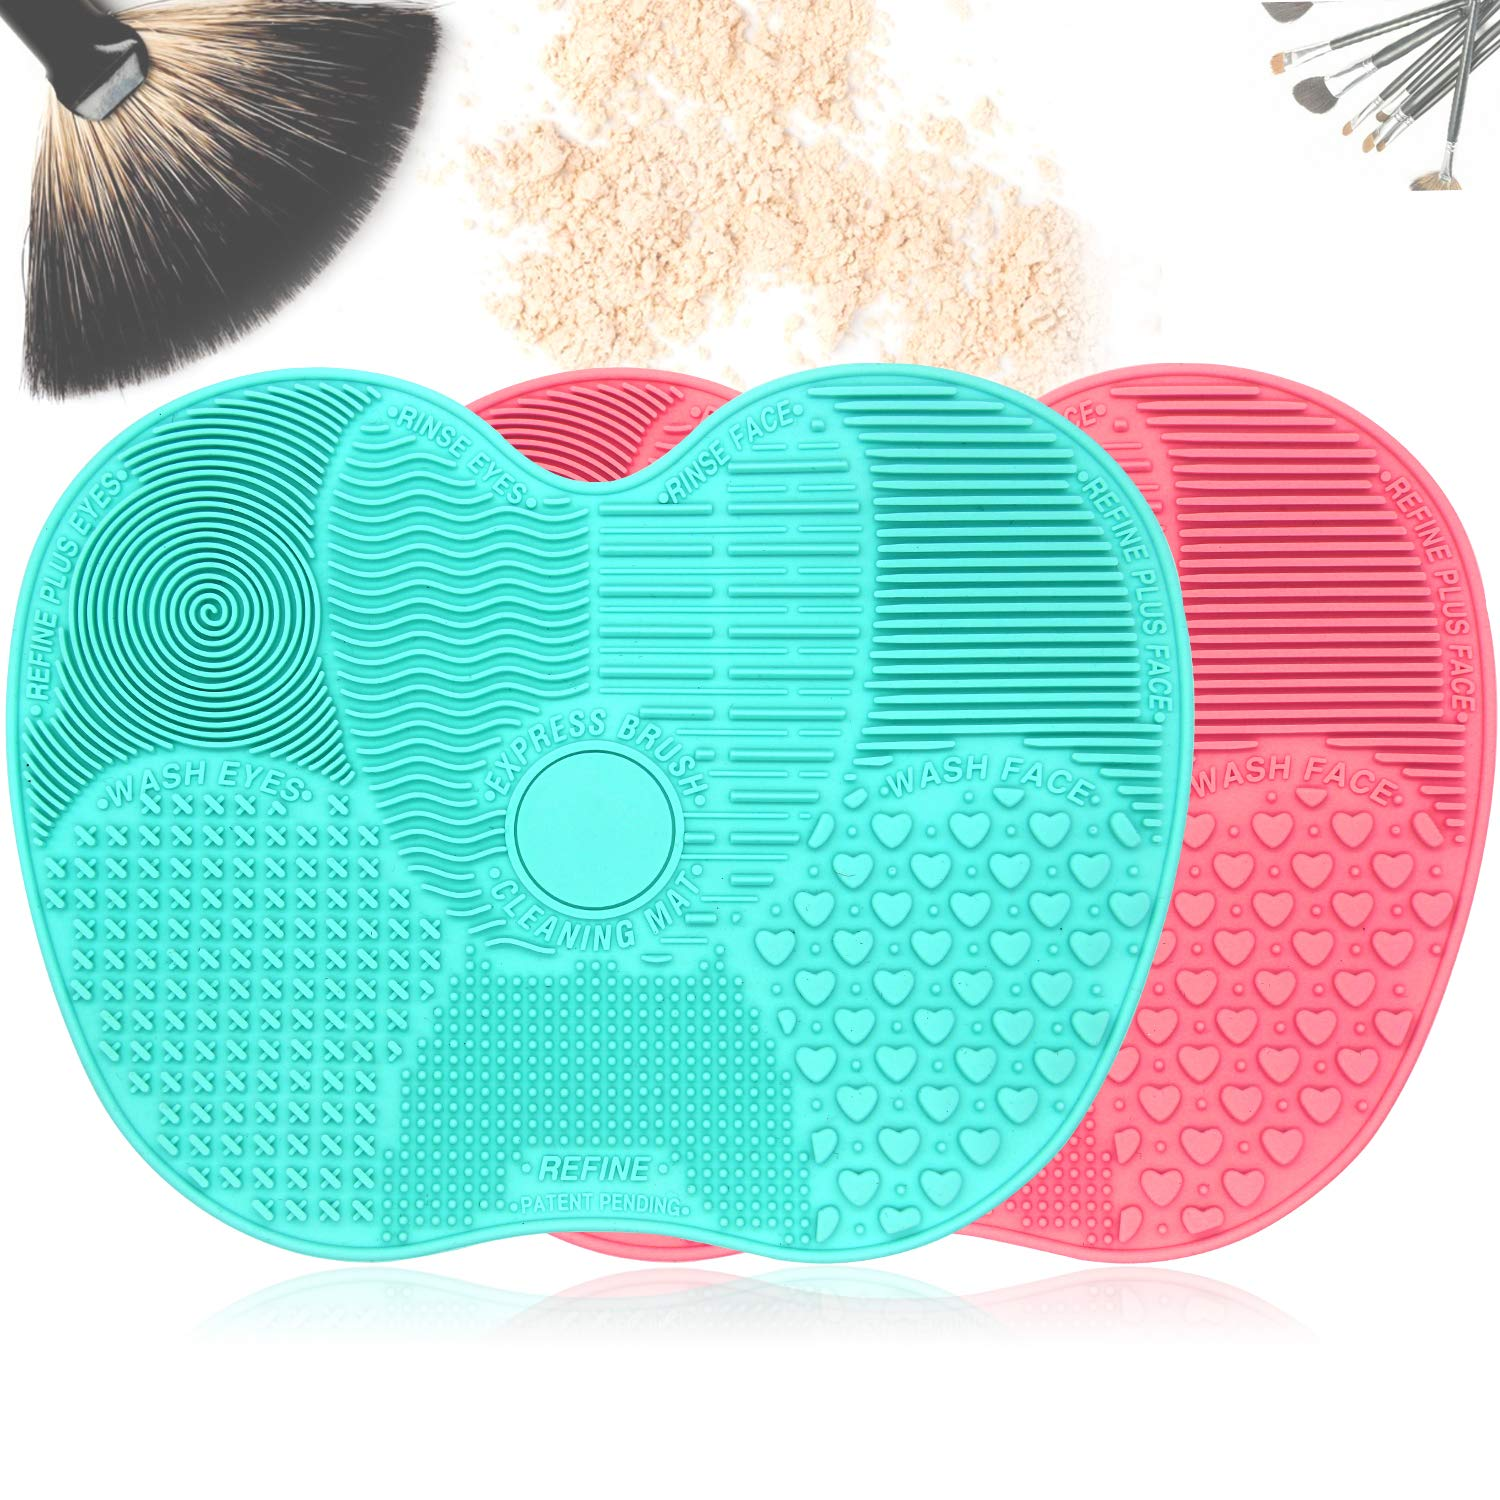 Portable Makeup Brush Cleaning Mat, Pack of 2 Colors Silicone Suction Cup Portable Cosmetic Brush Cleaning Tool for Travel & Home